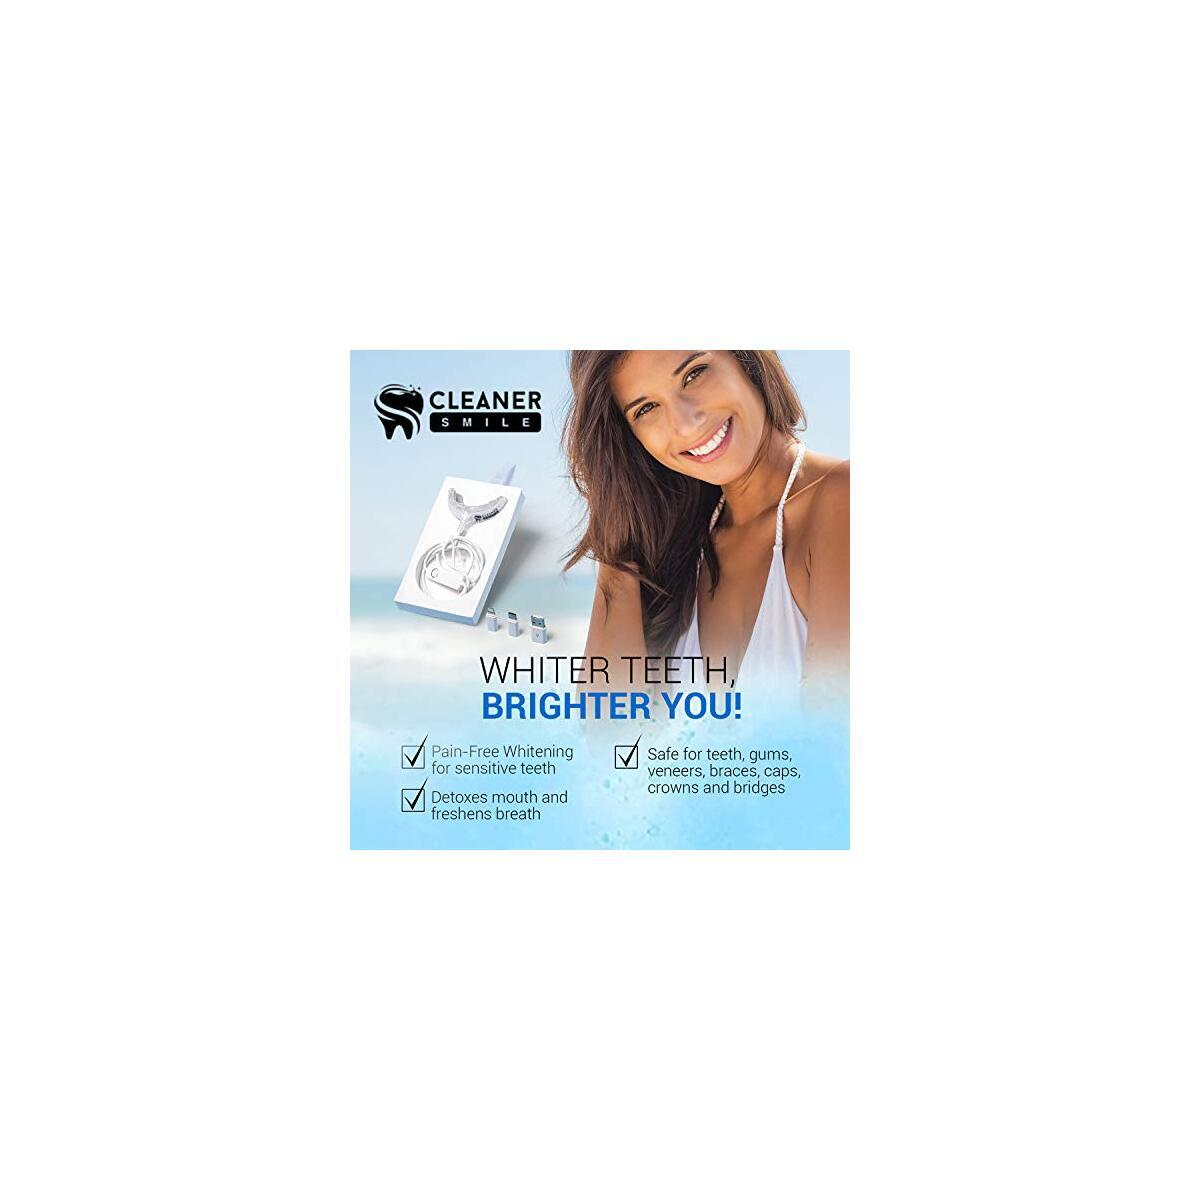 Cleaner Smile | Teeth Whitening LED Kit | Everything You Need for Whiter Teeth (Charcoal)…